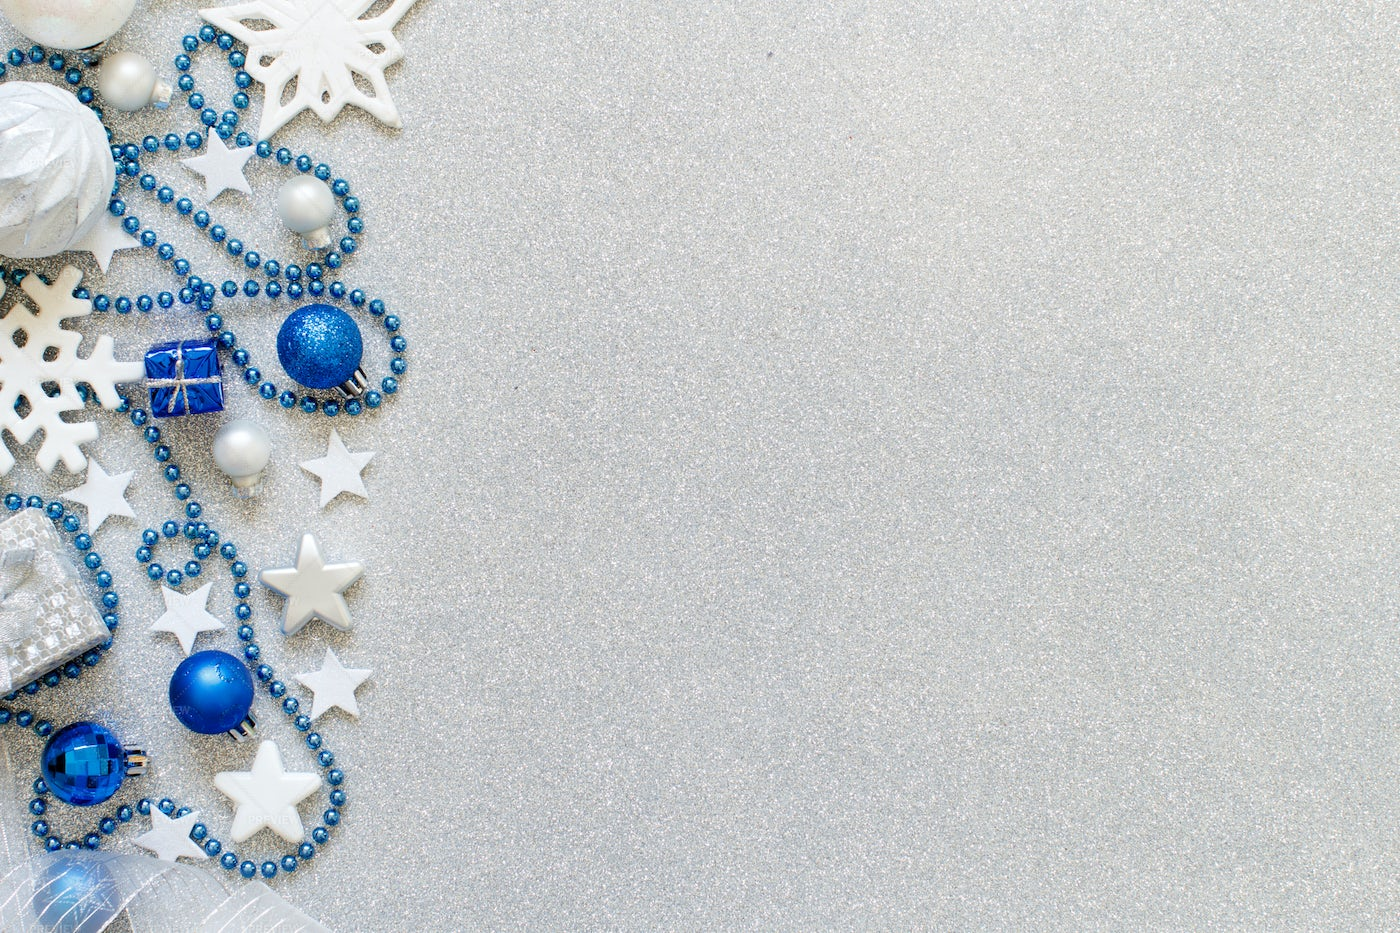 Silver And Blue Christmas Decorations: Stock Photos